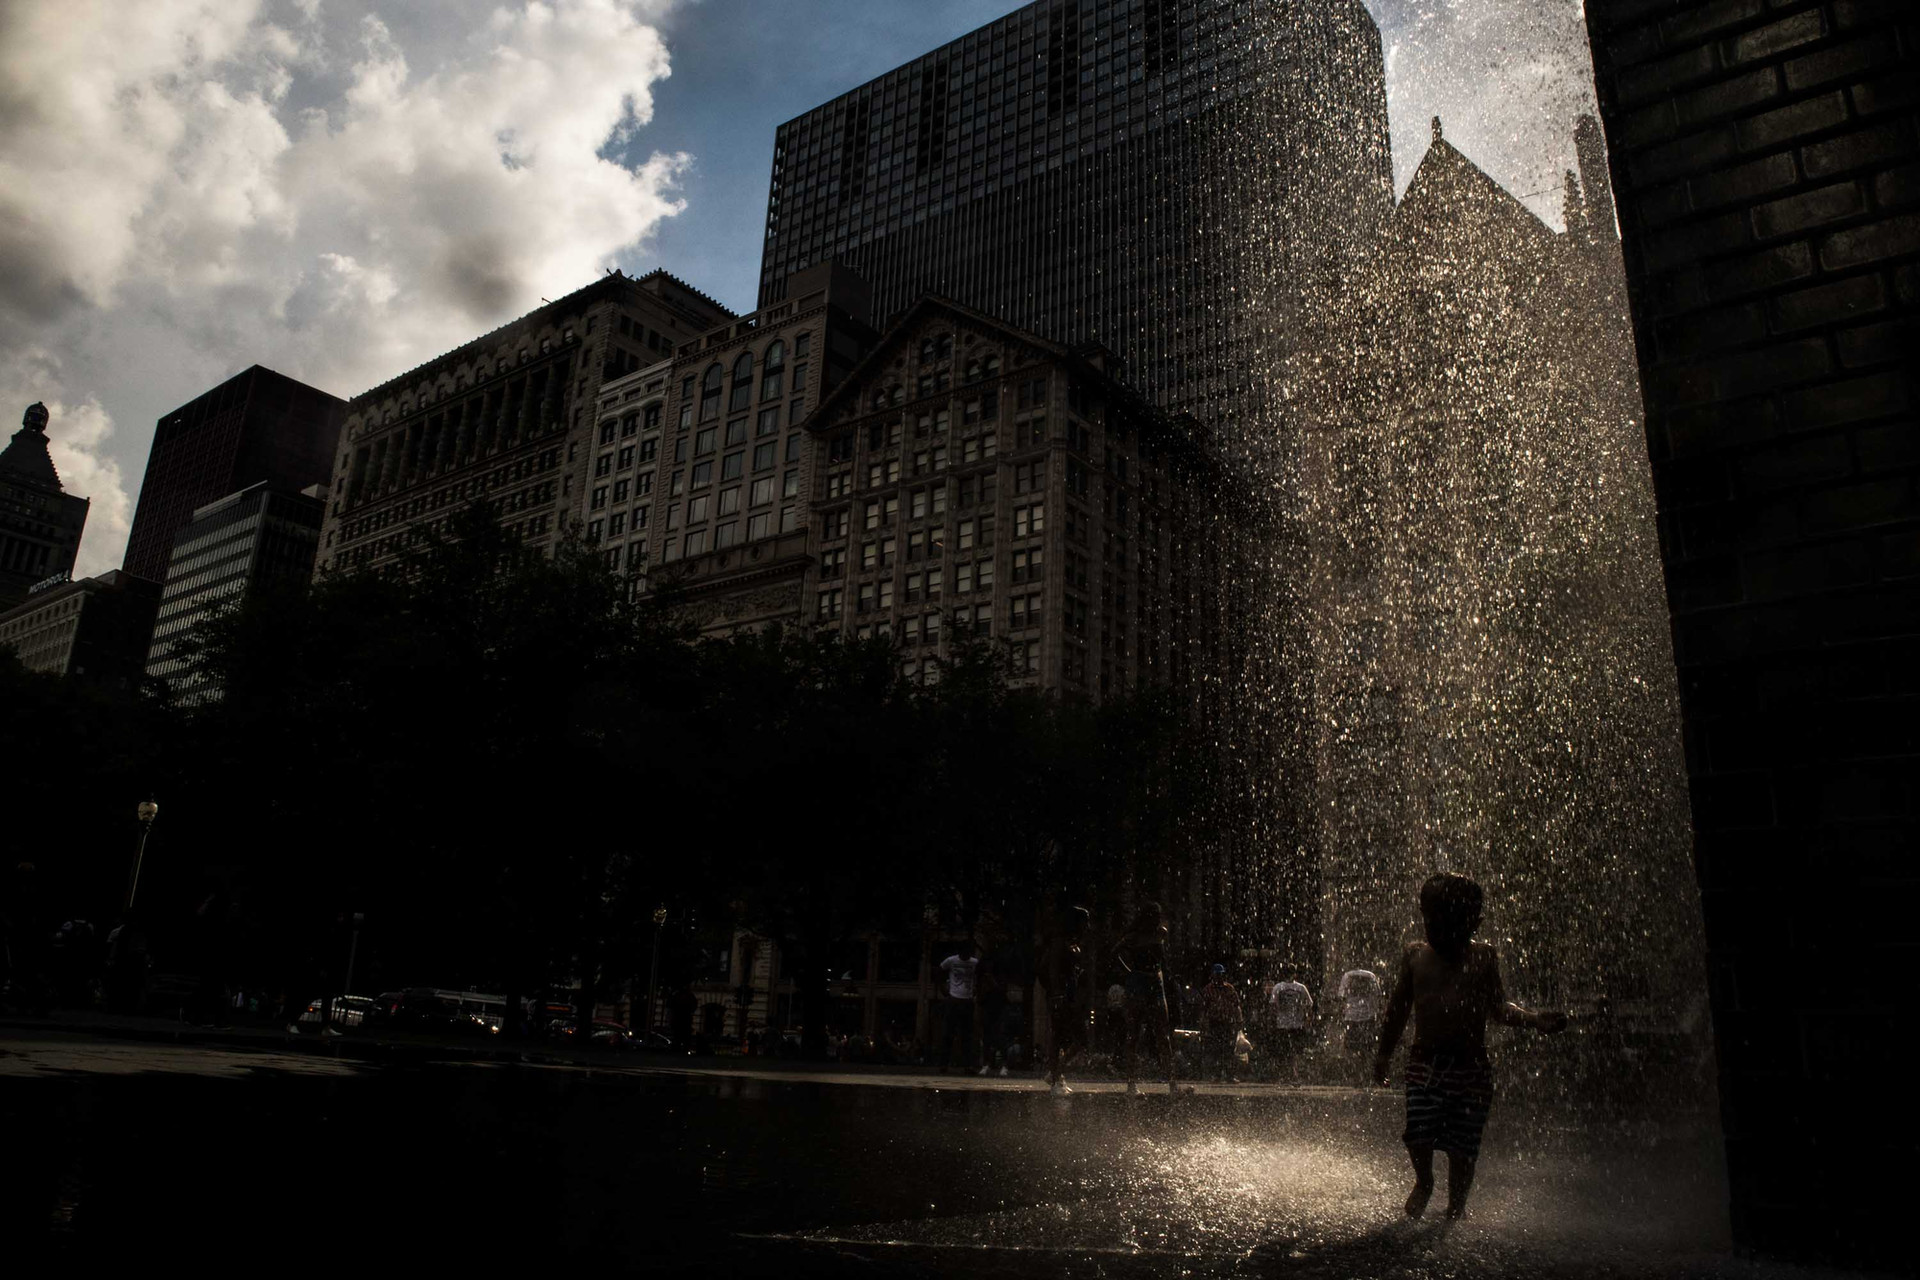 A boy cools himself from the summer heat by the Crown Fountain in Chicago, IL on August 2, 2018.